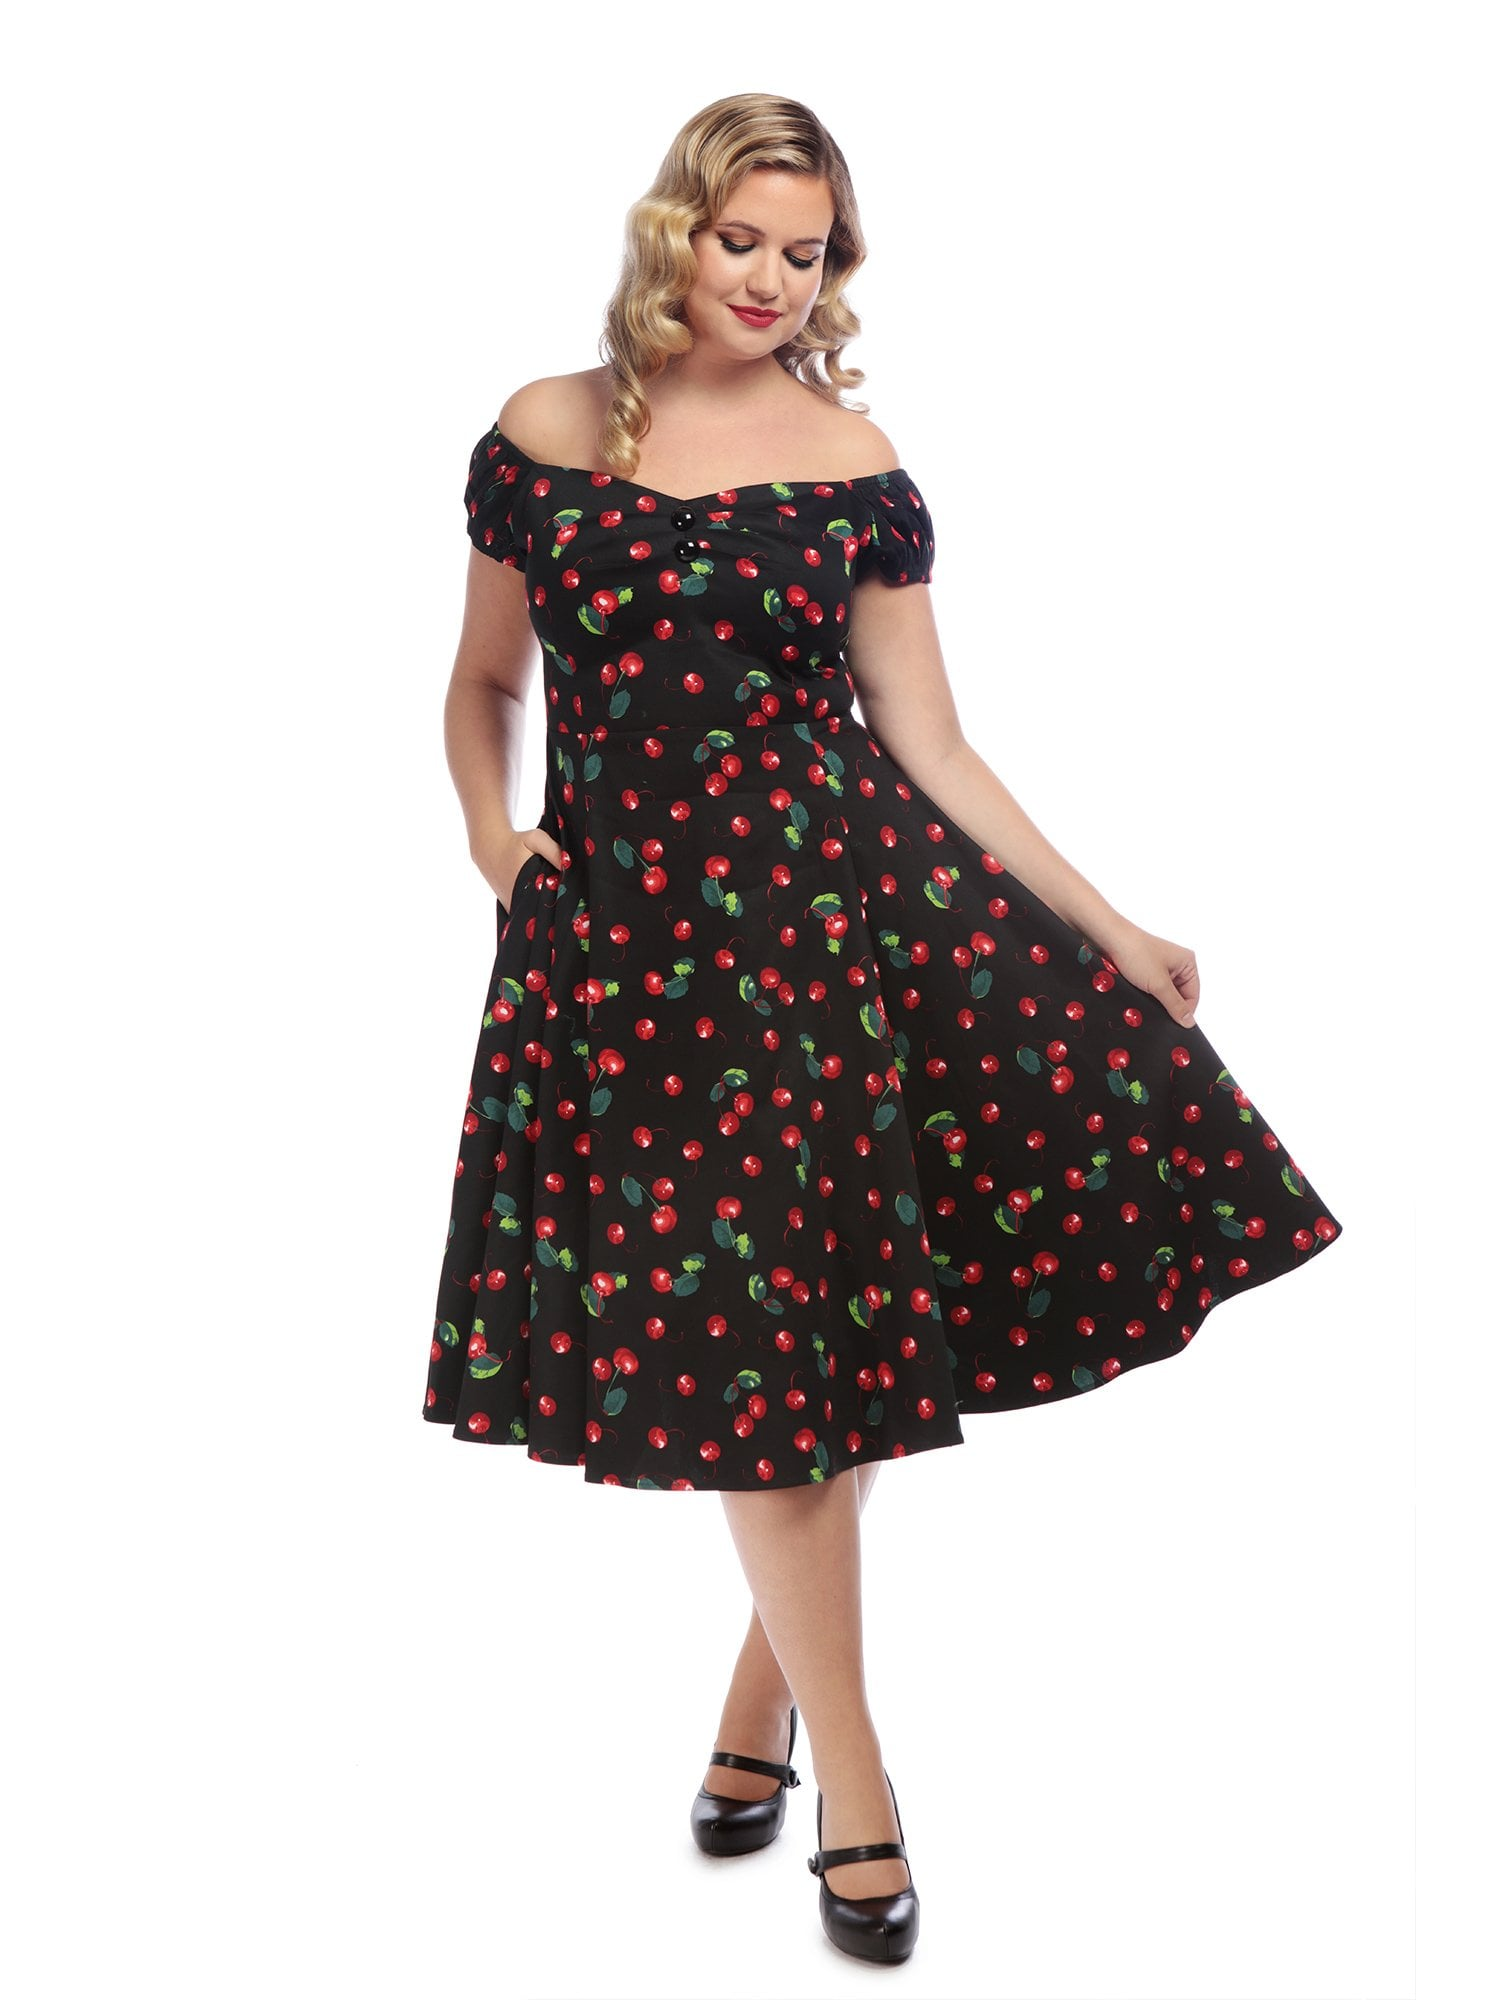 DOLORES DOLL 50S CHERRY PRINT DRESS